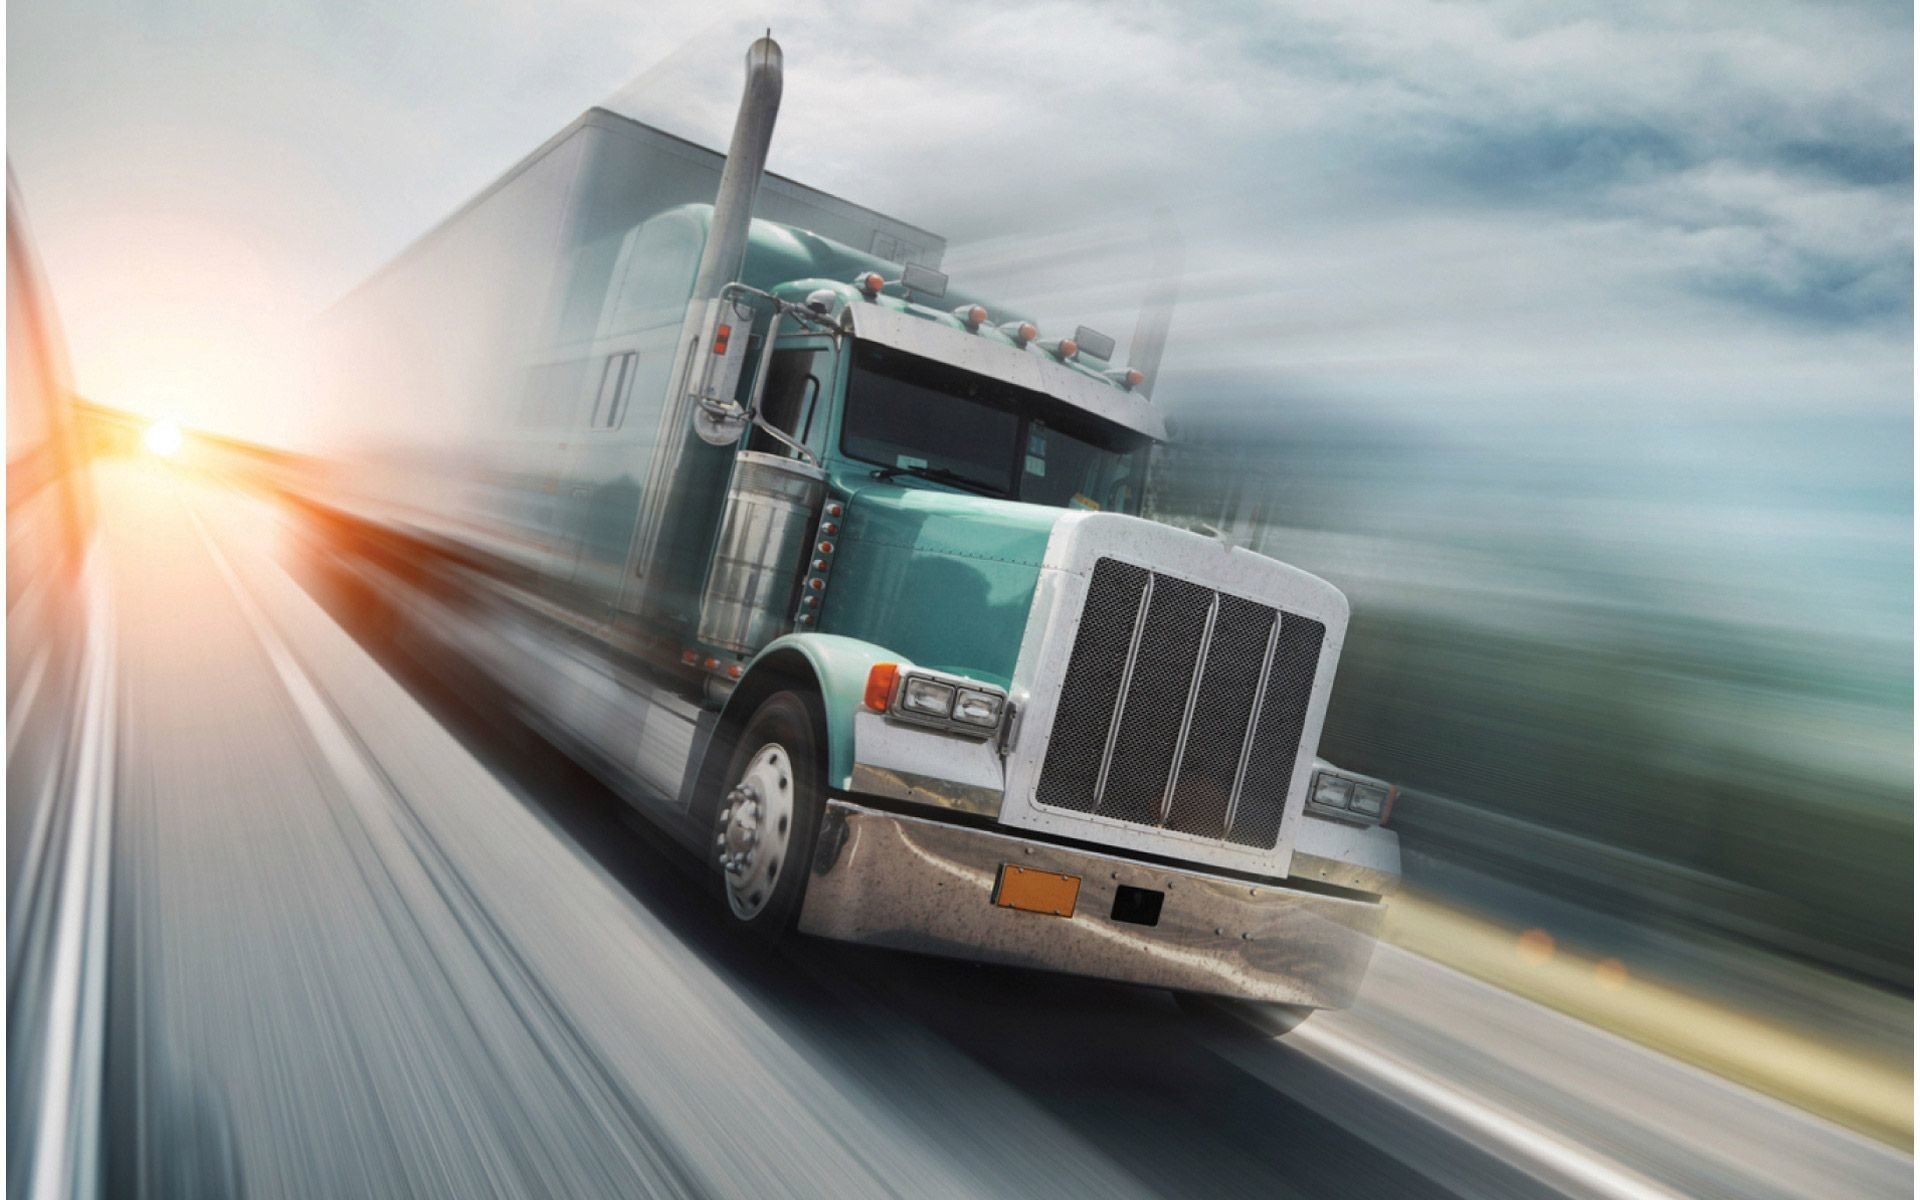 american trucks wallpapers images for desktop wallpaper background on car  category similar with american wallpapers and